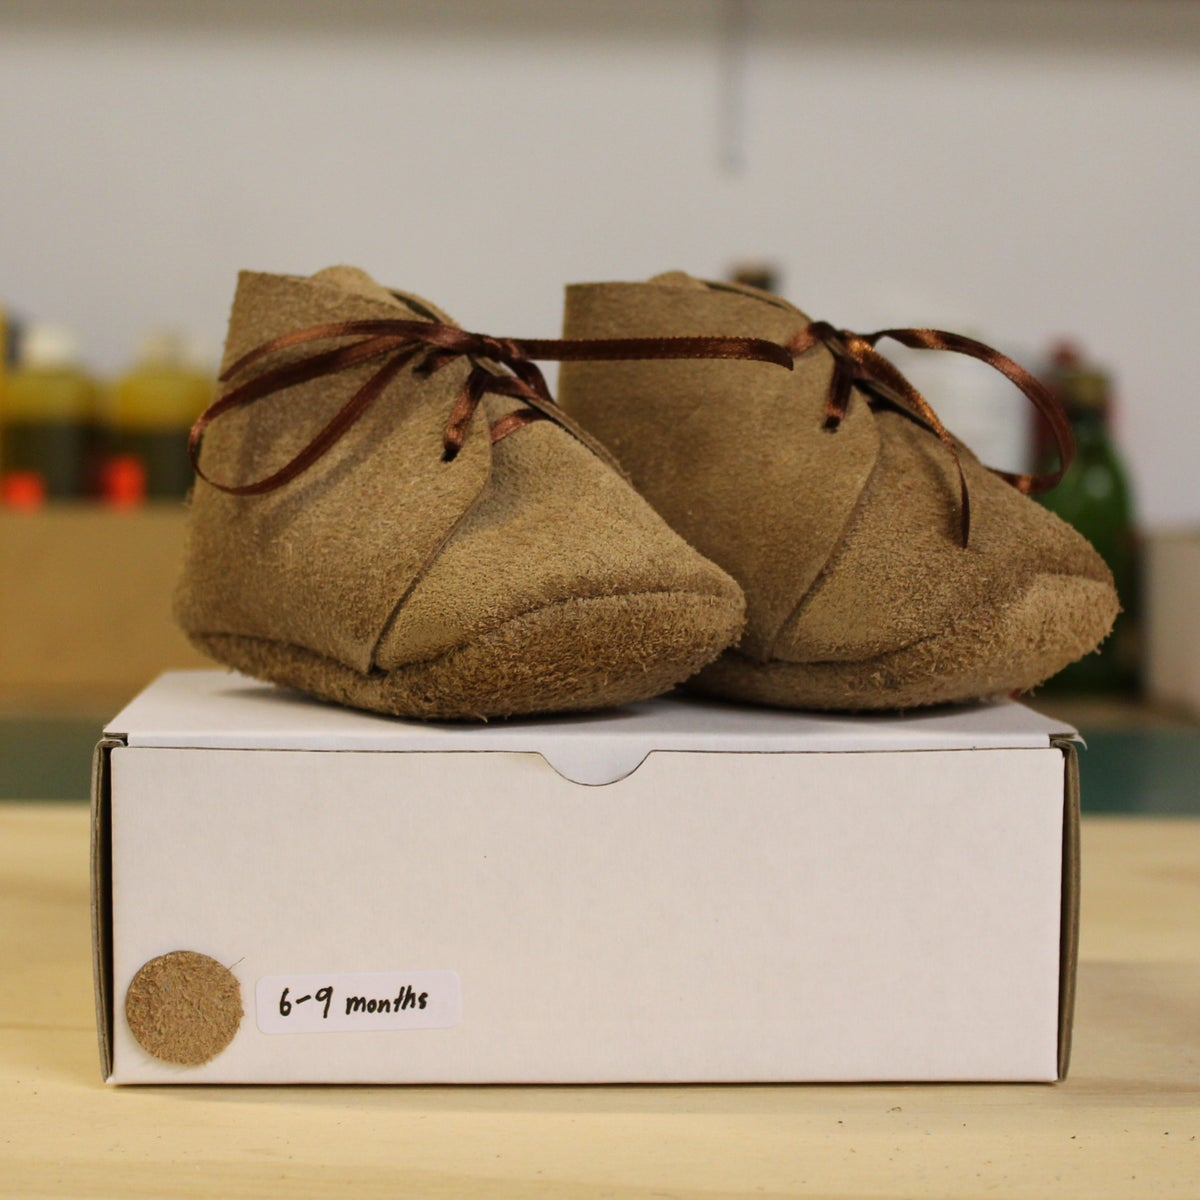 Baby Boots 6-9 months